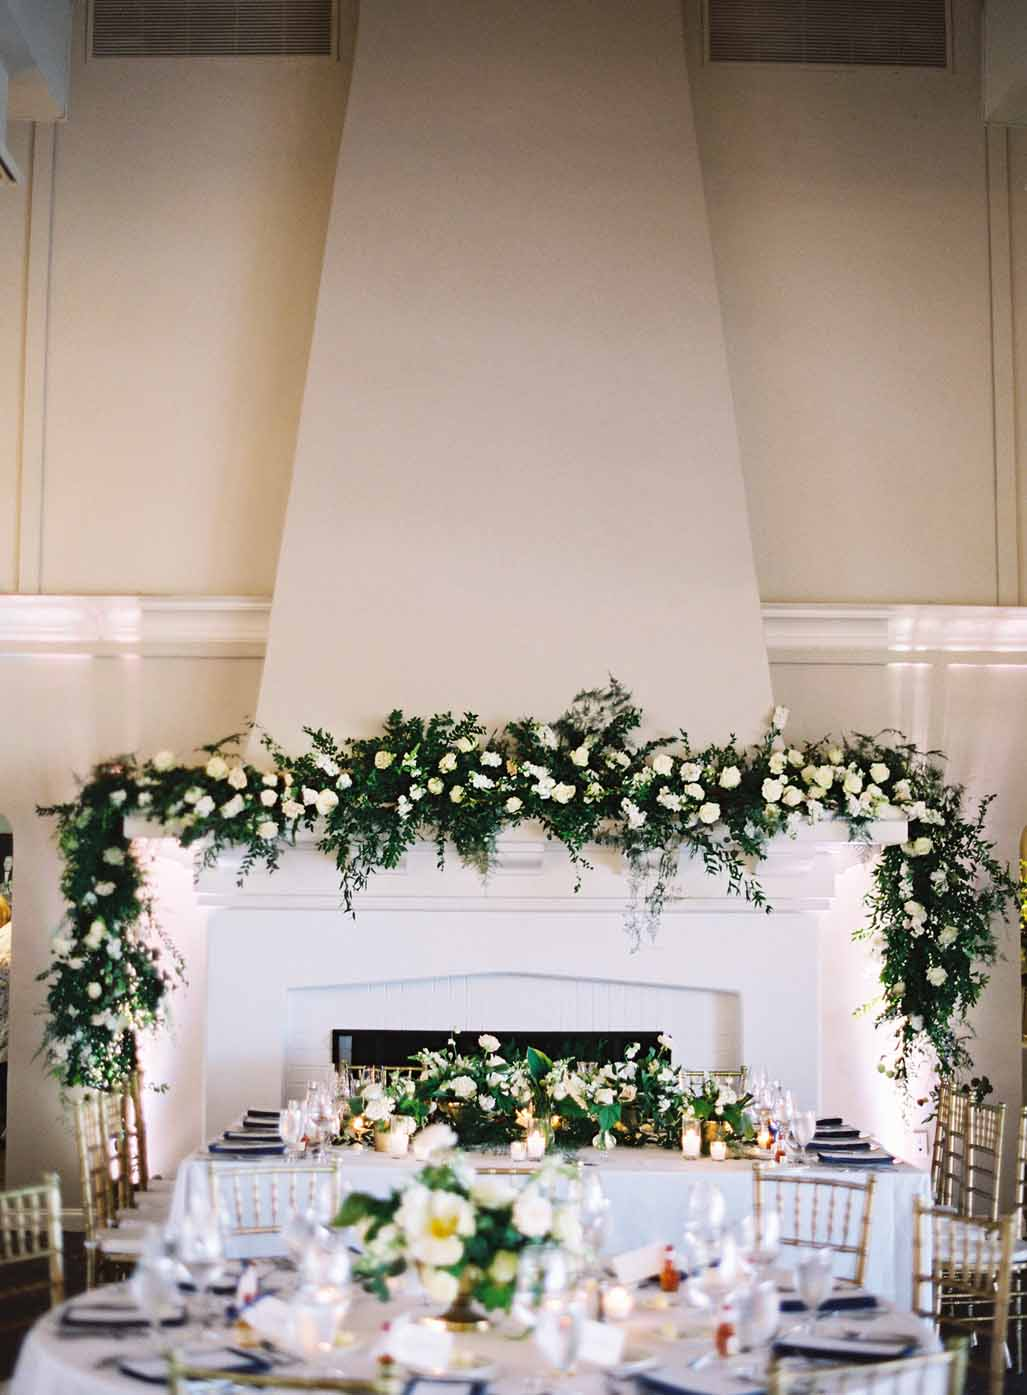 large greenery and floral garland as head table backdrop